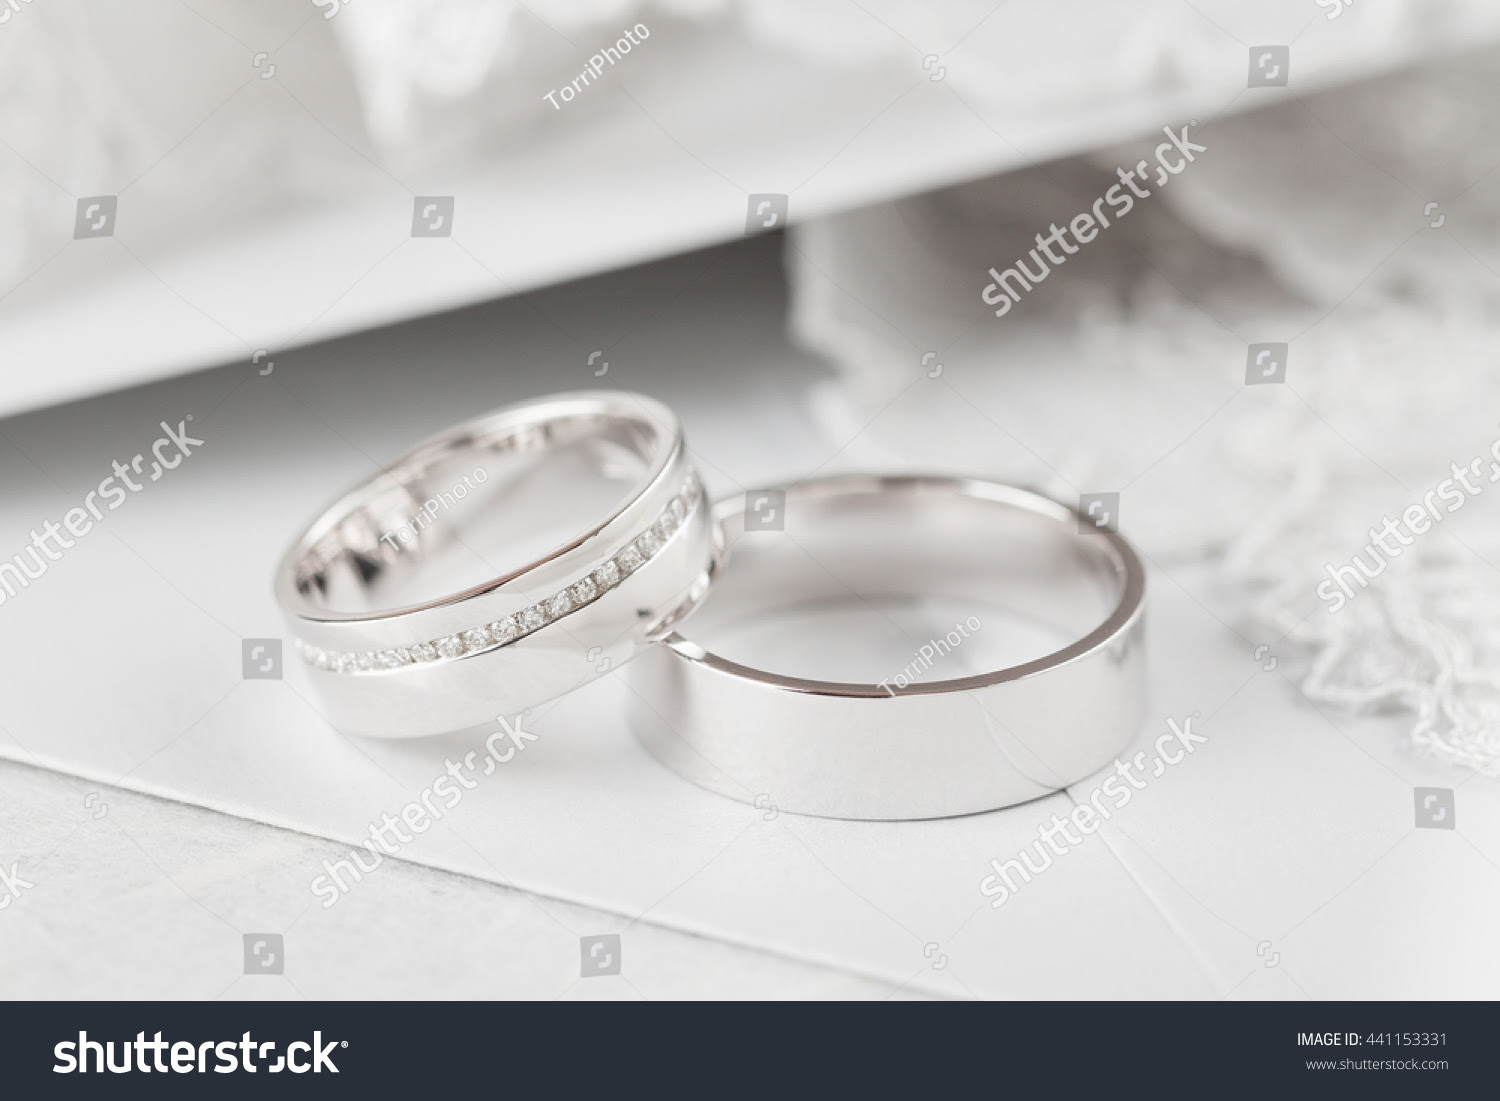 anniversary, background, bridal, bride, celebration, ceremony, commitment, couple, diamond, engagement, eternity, fiancee, focus, gem, gold, golden, gray, groom, husband, innocence, jewelery, jewelry, lace, love, macro, marriage, married, metal, neutral, nobody, object, pair, platinum, proposal, pure, purity, reflection, rings, romance, romantic, satin, shallow, shiny, silver, symbol, together, two, unity, wedding, white, wife